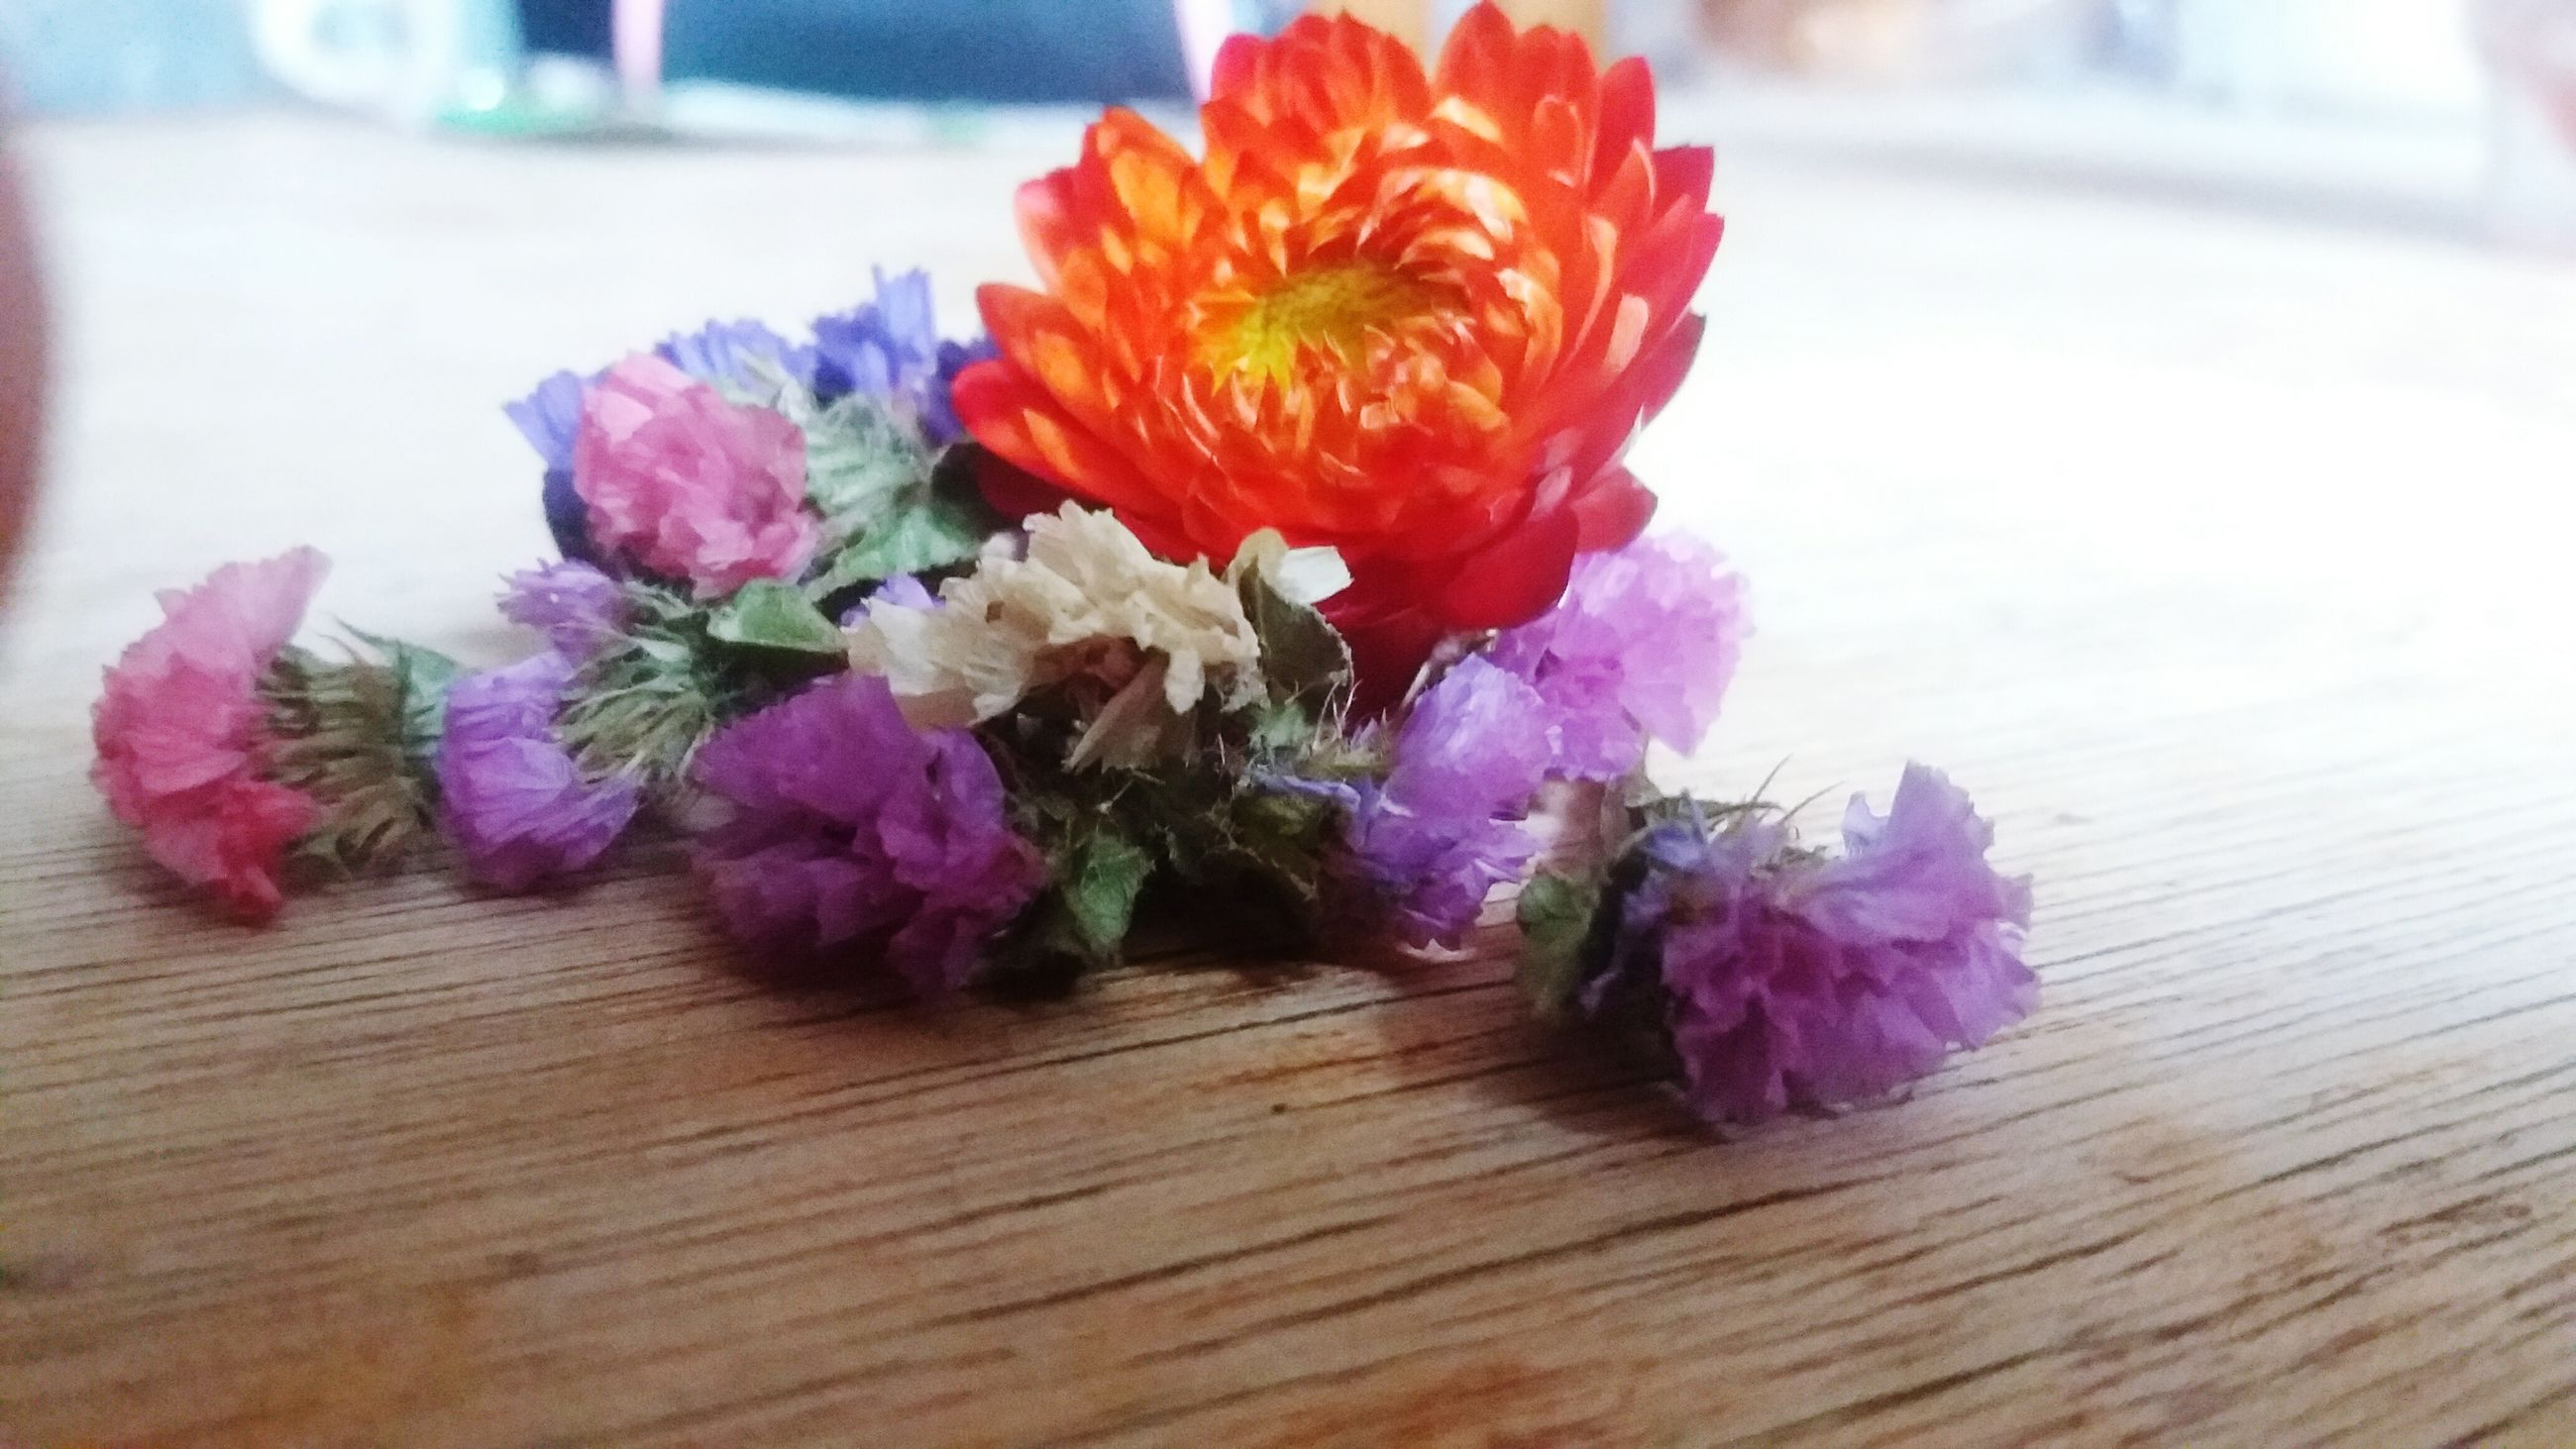 flower, petal, freshness, indoors, fragility, flower head, table, beauty in nature, close-up, wood - material, vase, still life, multi colored, bouquet, nature, bunch of flowers, no people, purple, flower arrangement, selective focus